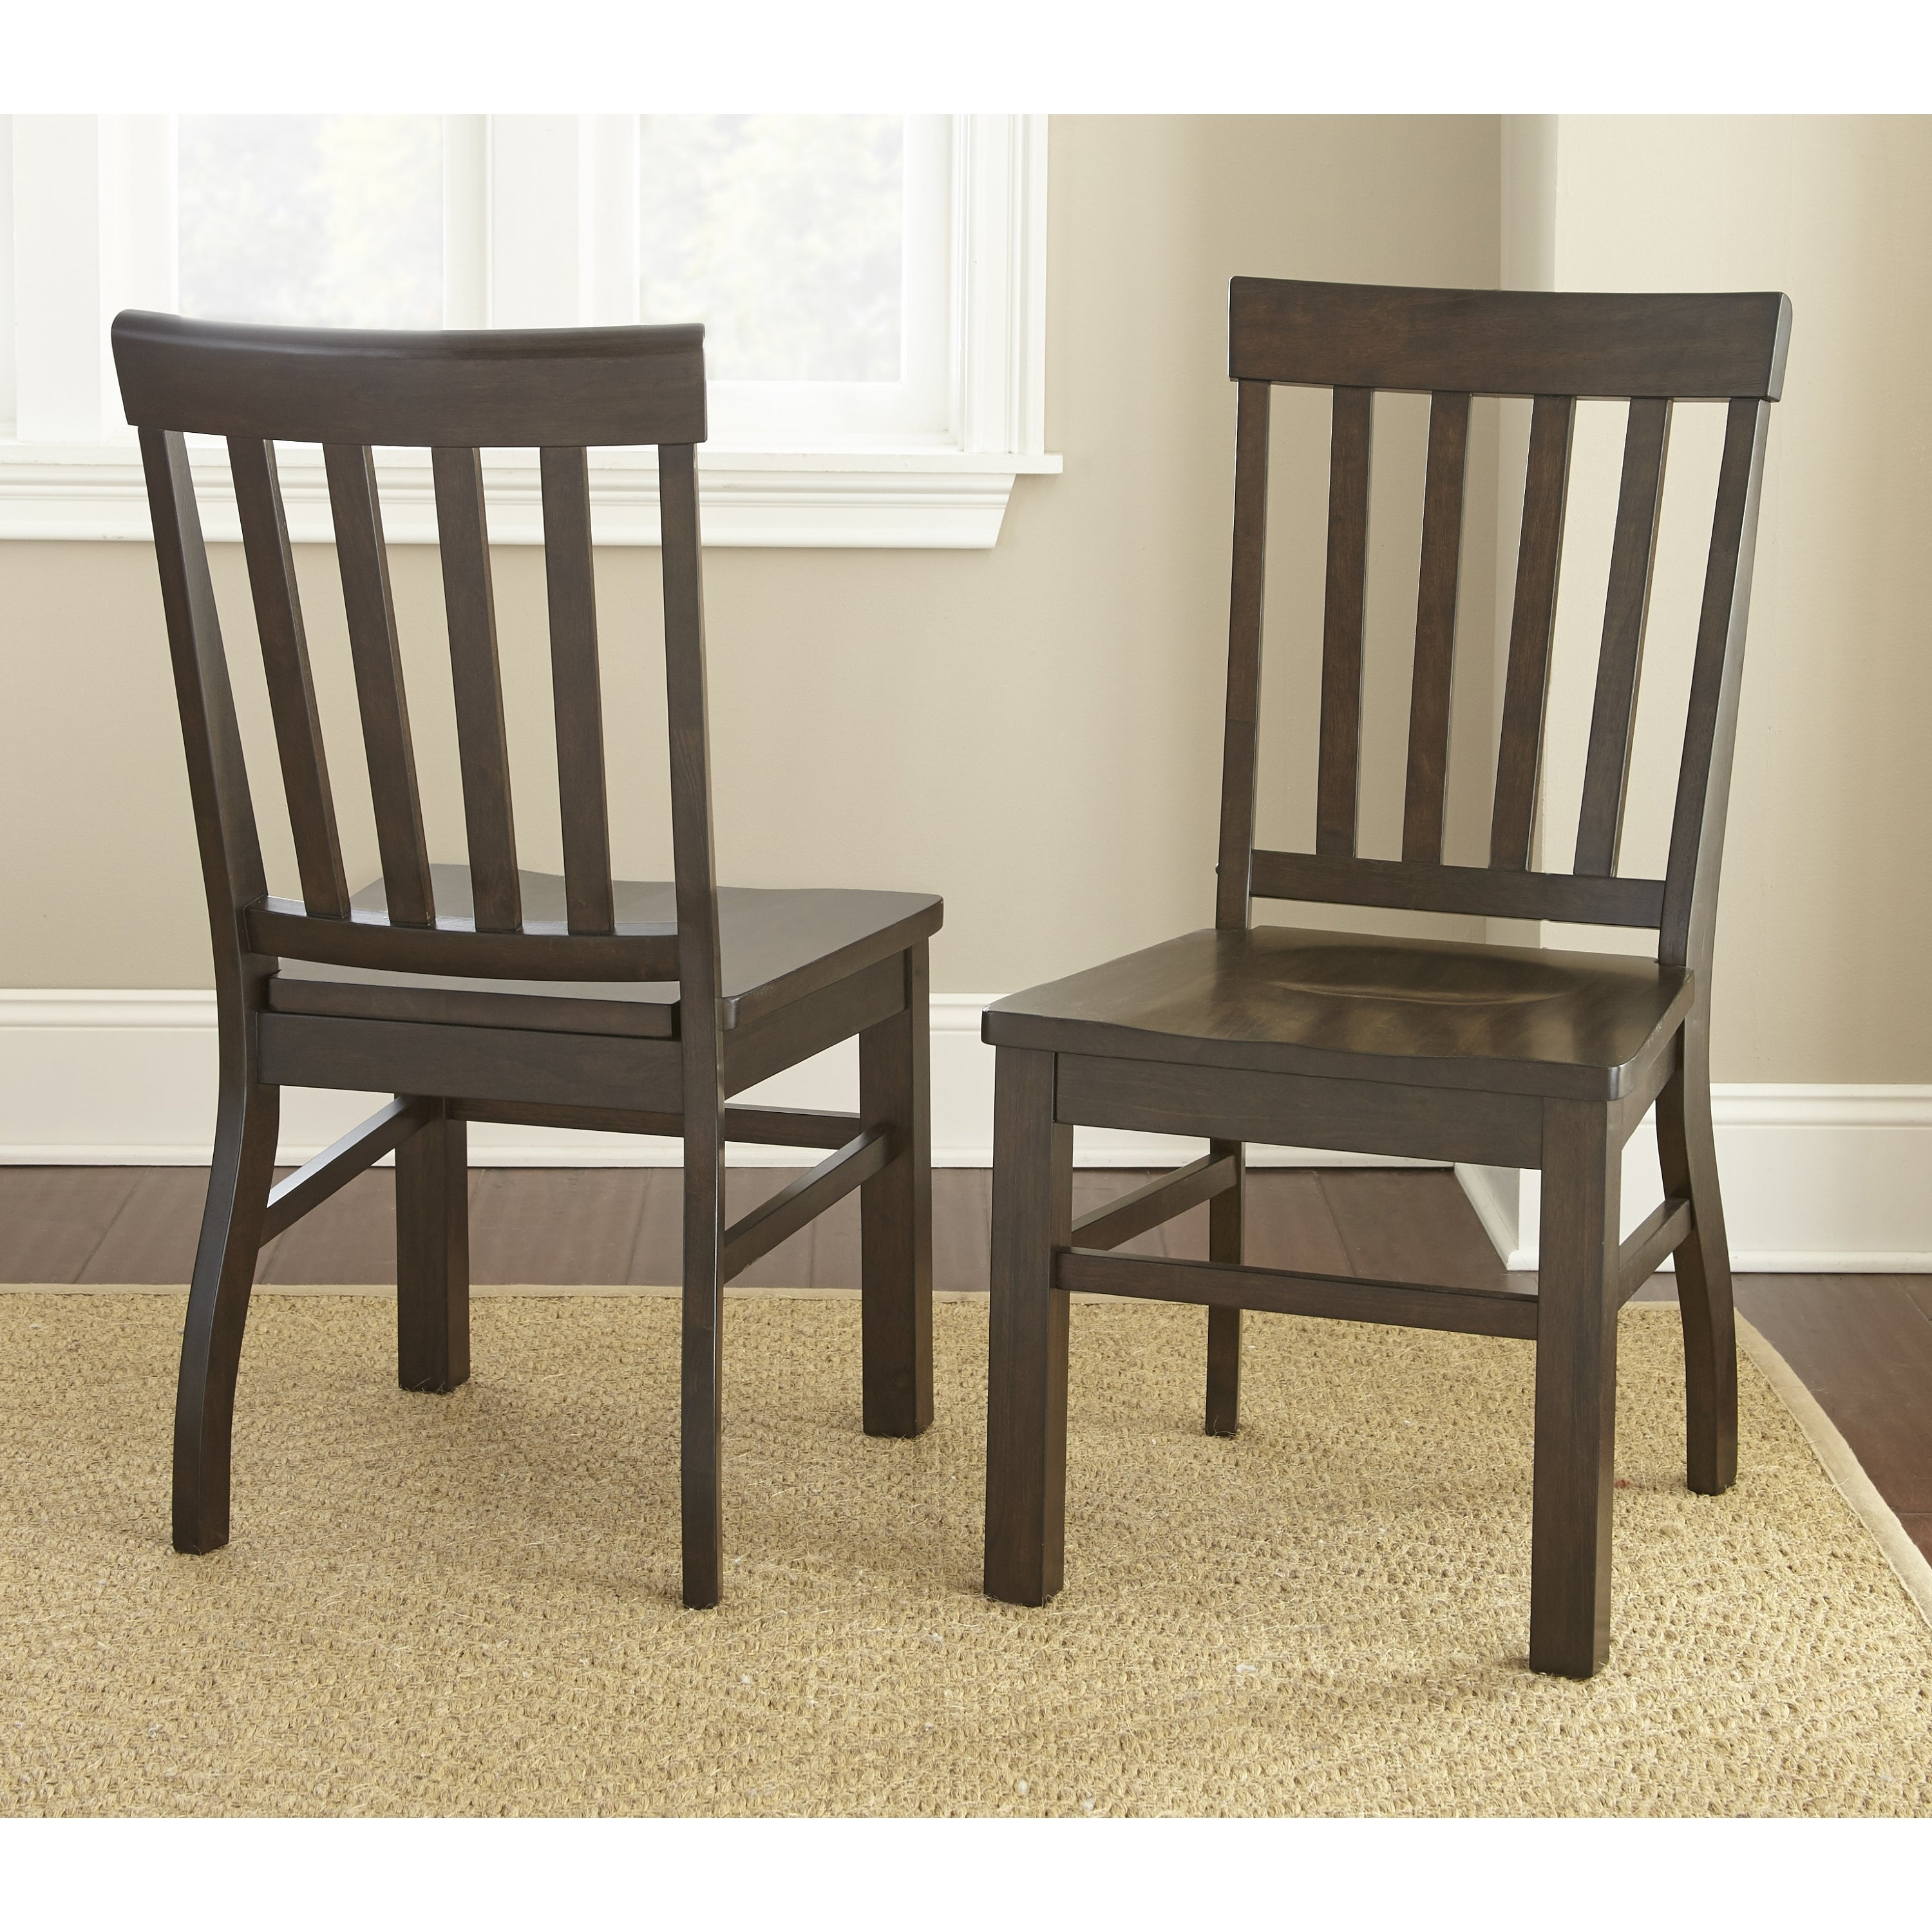 Cottonville hardwood farmhouse dining chairs set of 2